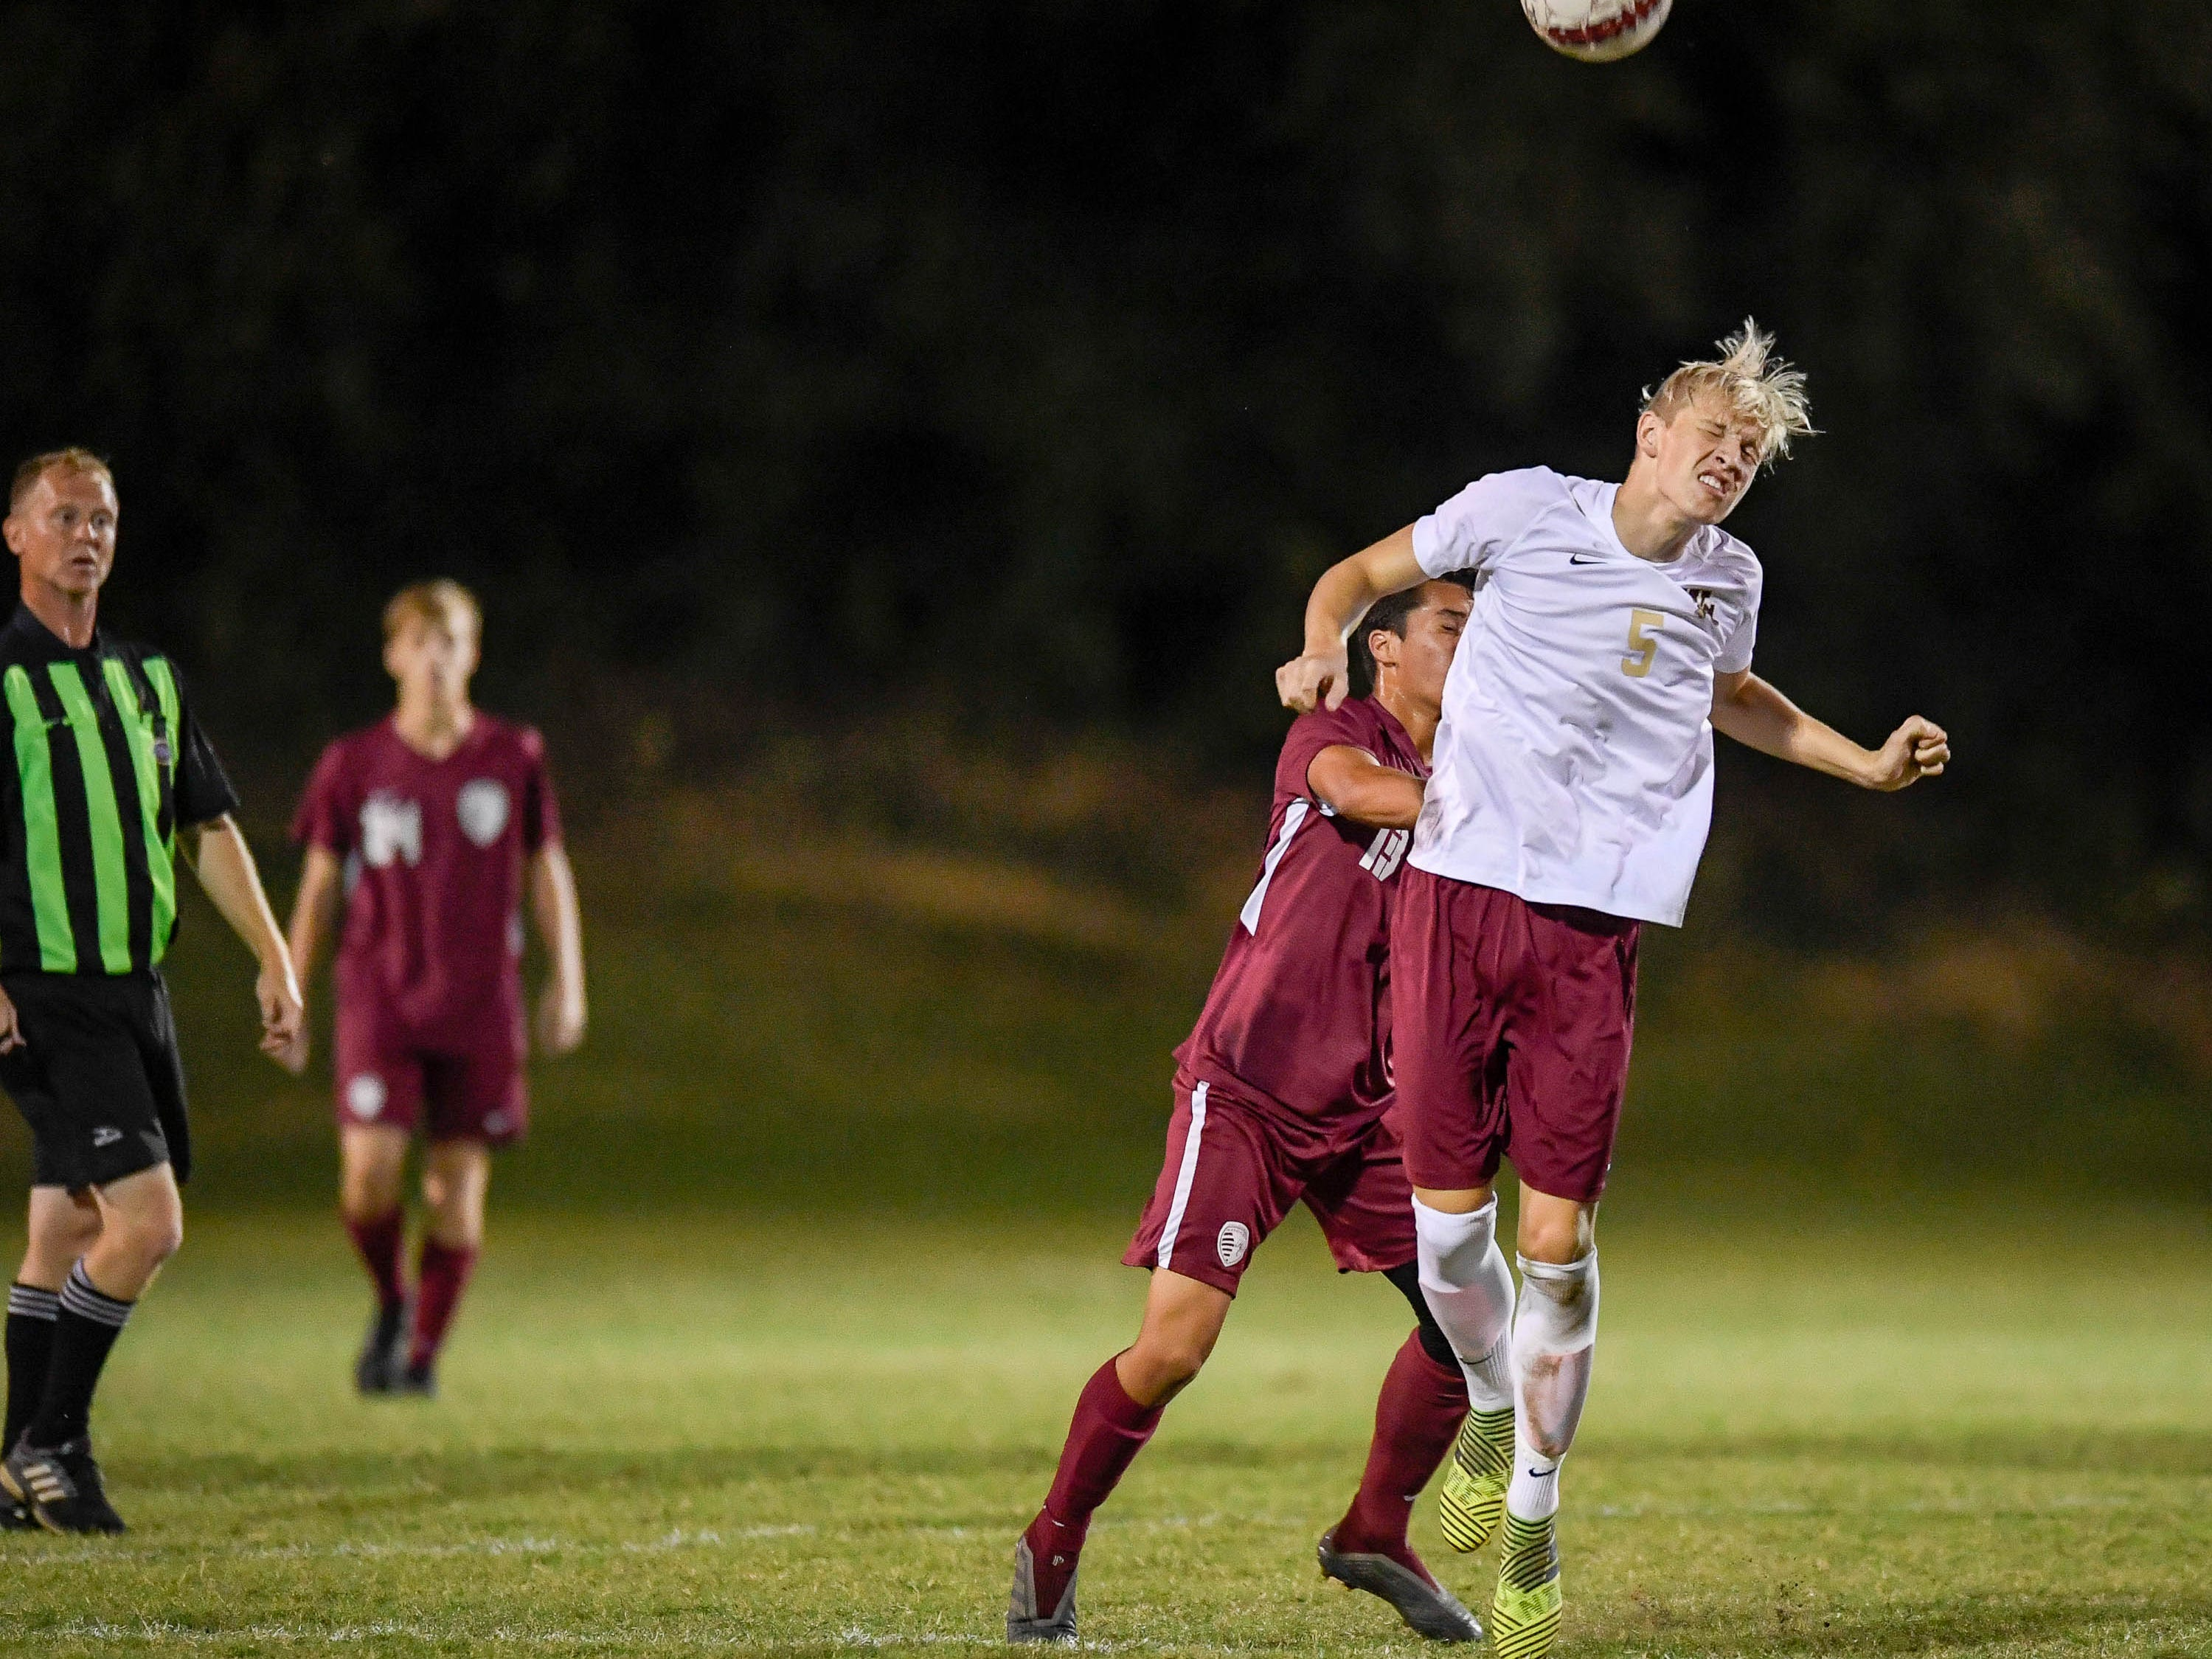 Webster's Dawson McVay (5) heads the ball as the Henderson County Colonels play the Webster County Trojans in the Sixth District Soccer Tournament at Colonel Field Wednesday, October 10, 2018.